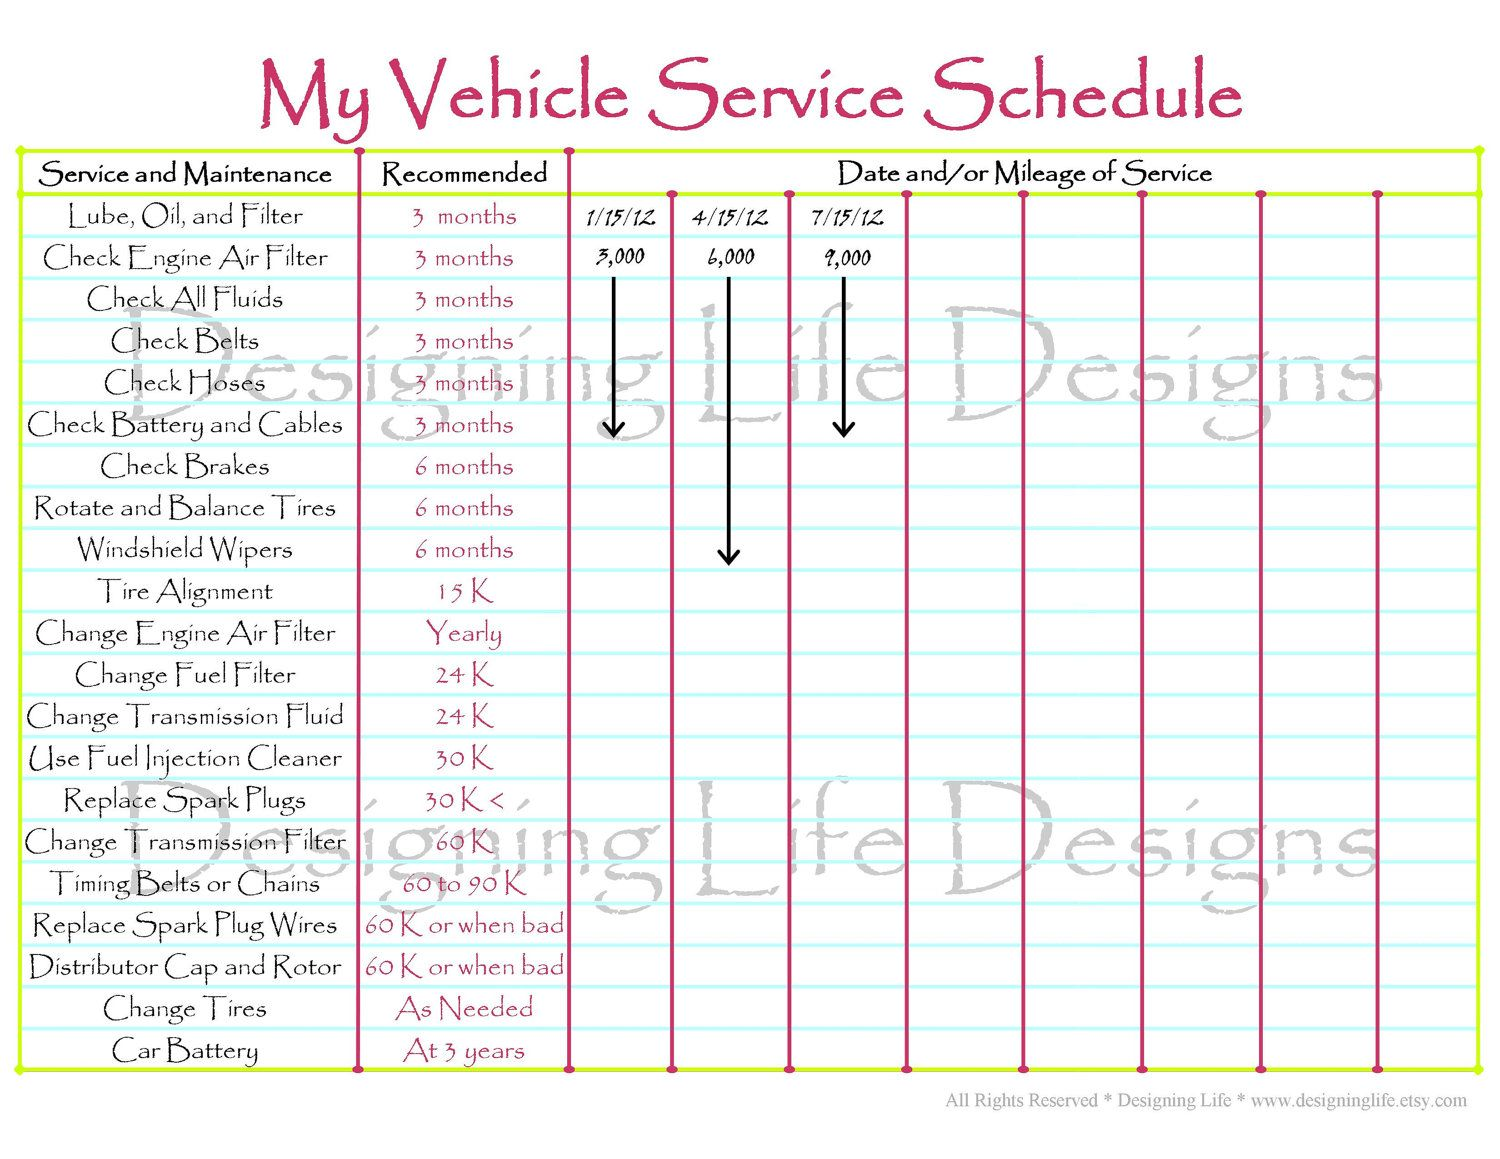 photograph regarding Car Maintenance Schedule Printable identify Automobile Timetable Printable - Editable Assistance Log - House Binder